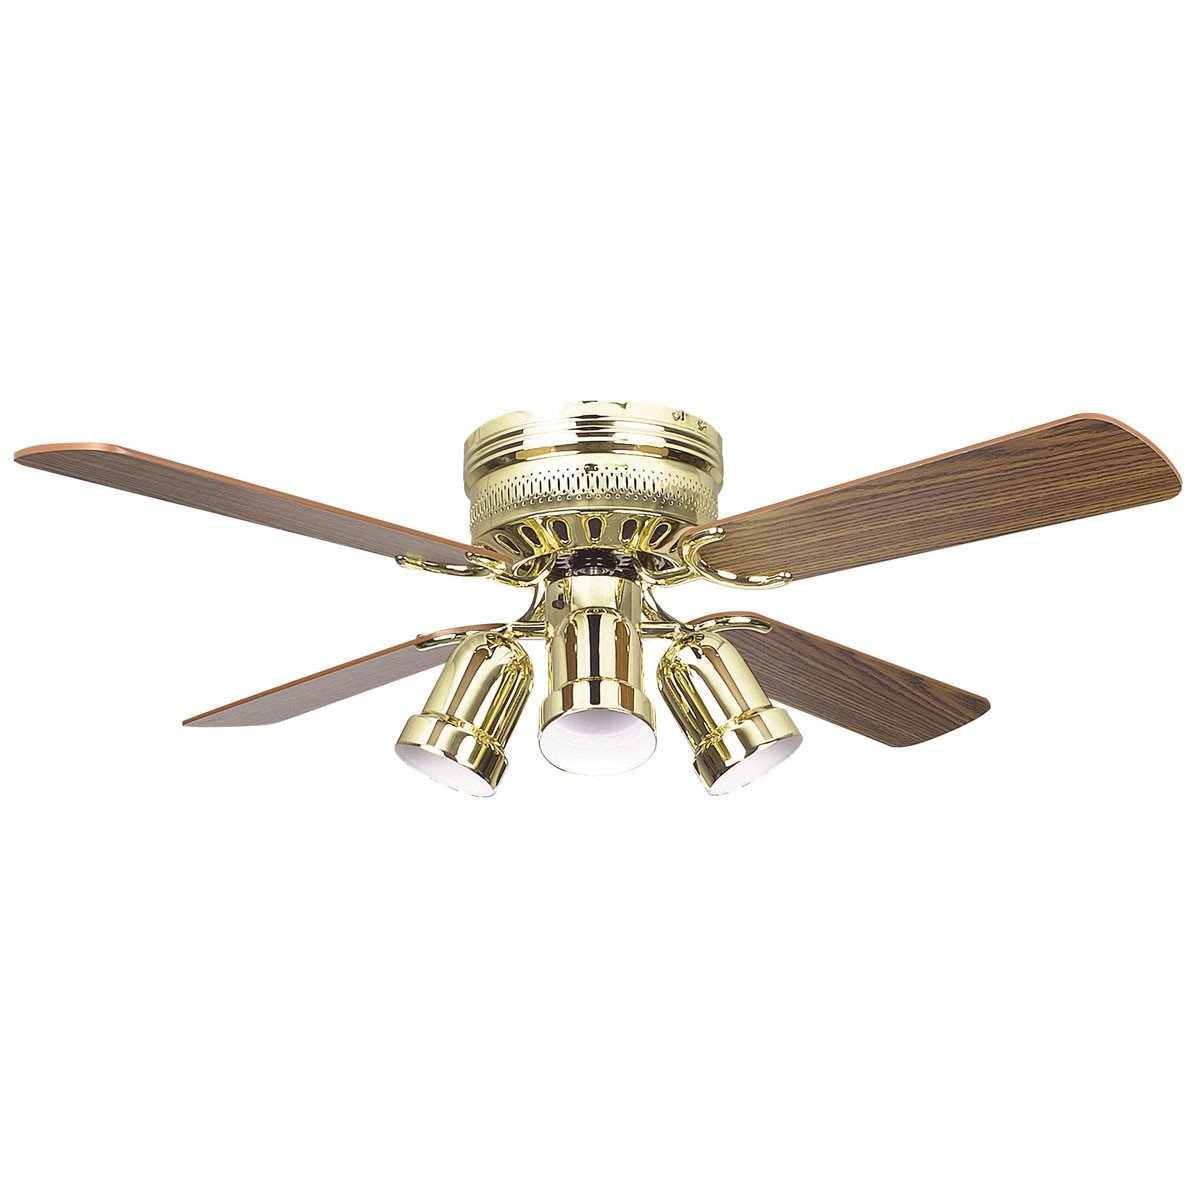 "Concord Fans 42"" Small Polished Brass Low Profile Hugger Ceiling Fan with Lights"